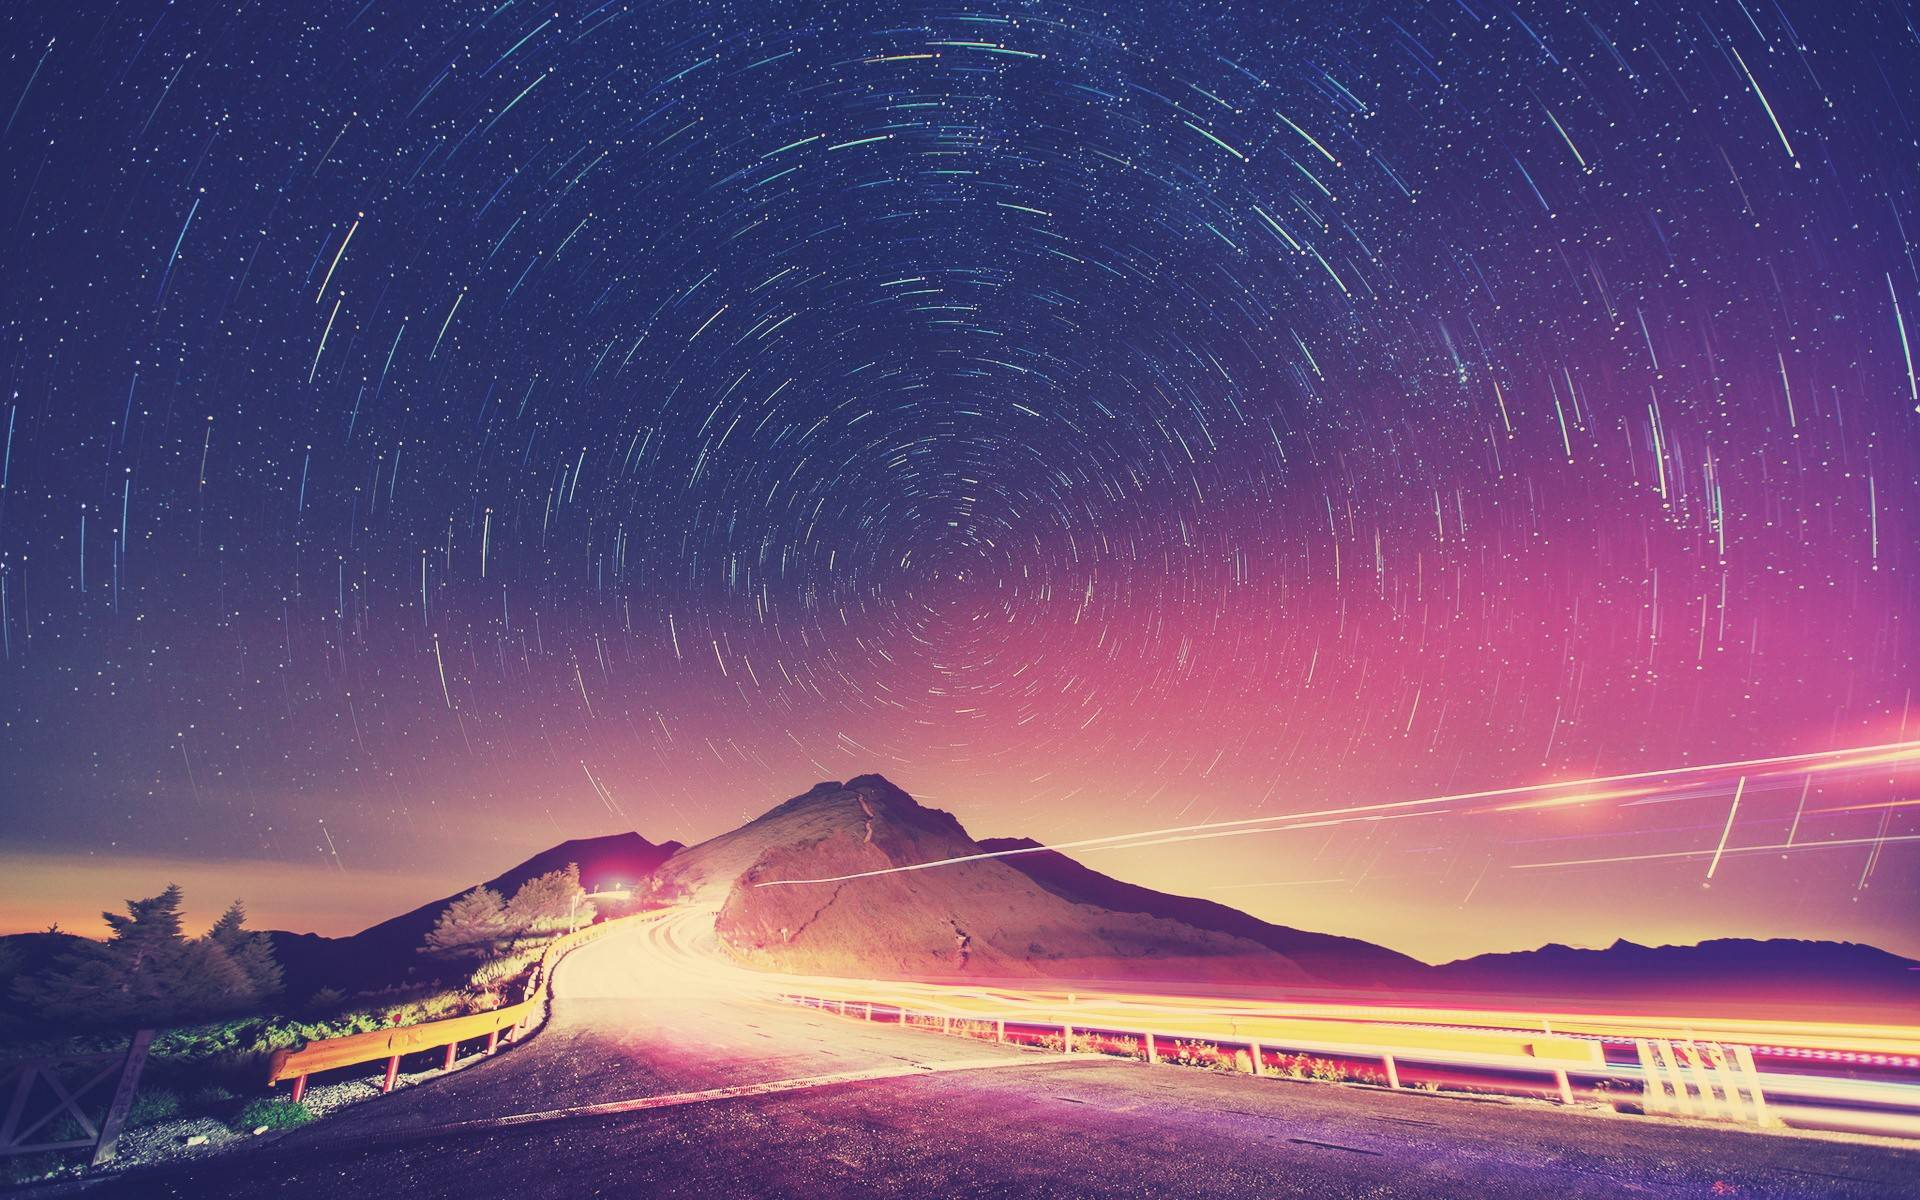 Road at Night Wallpaper for Microsoft Surface Pro